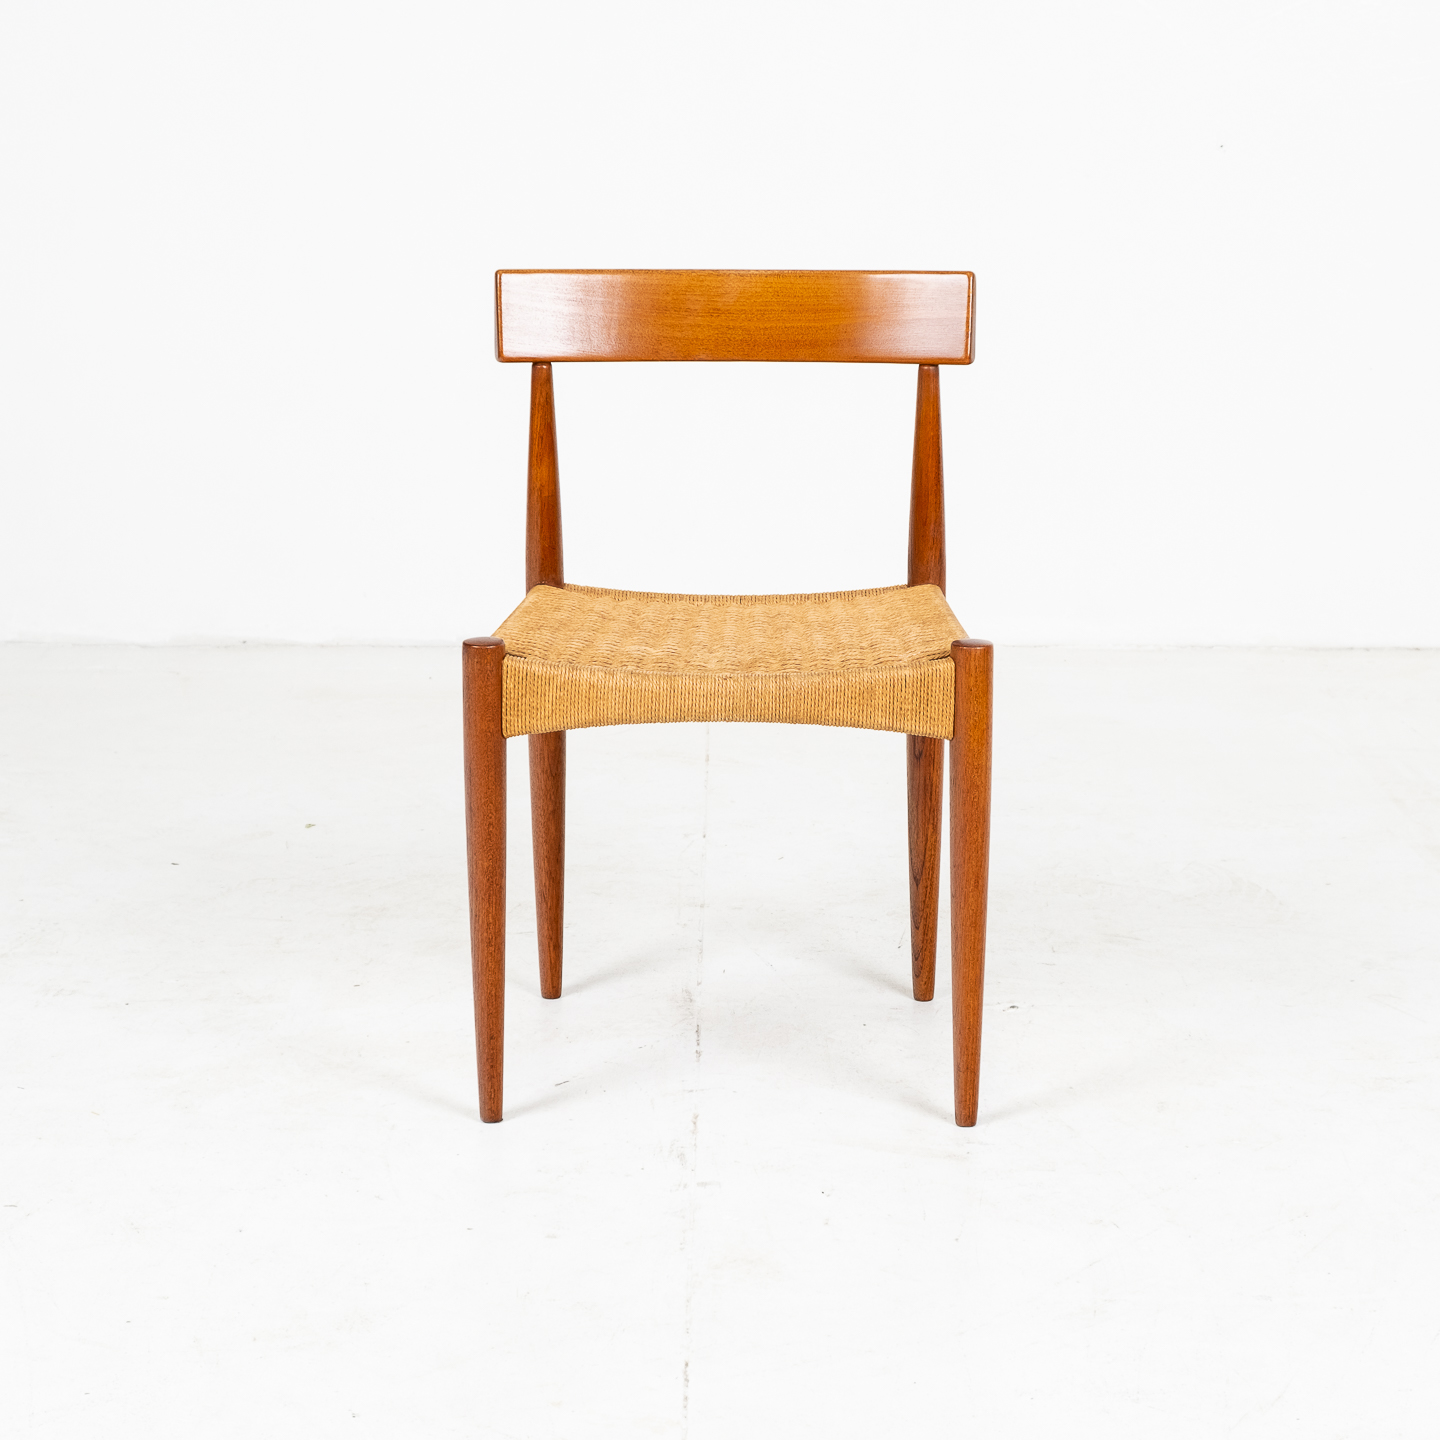 Set Of Four Dining Chairs In Teak And Danish Cord By Mk Danish, 1950s, Denmark 01